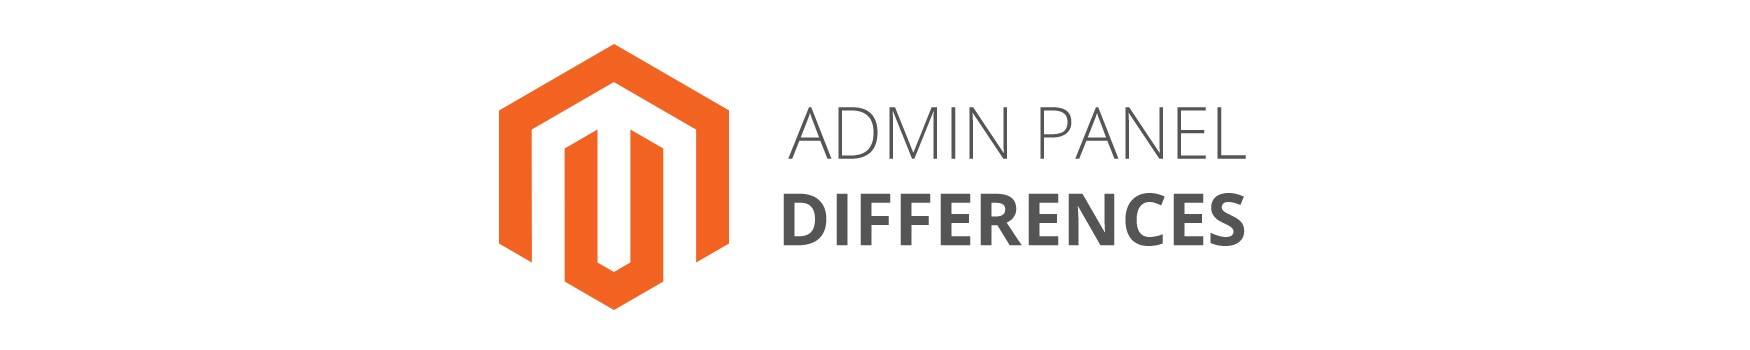 Admin Panel Differences of Magento 1 vs 2